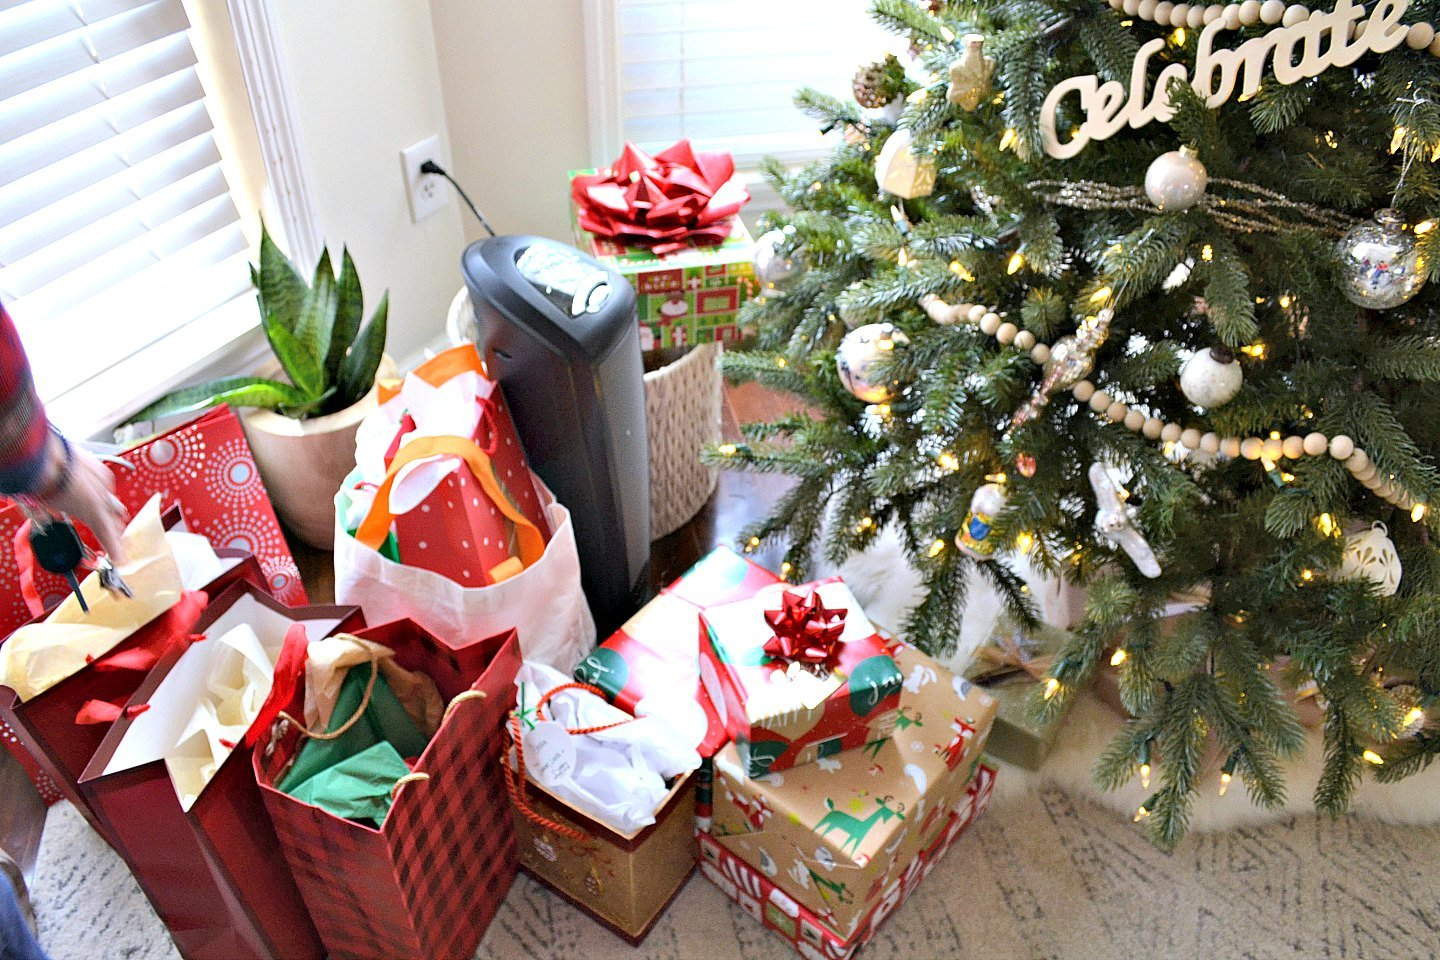 presents in a pile under the tree